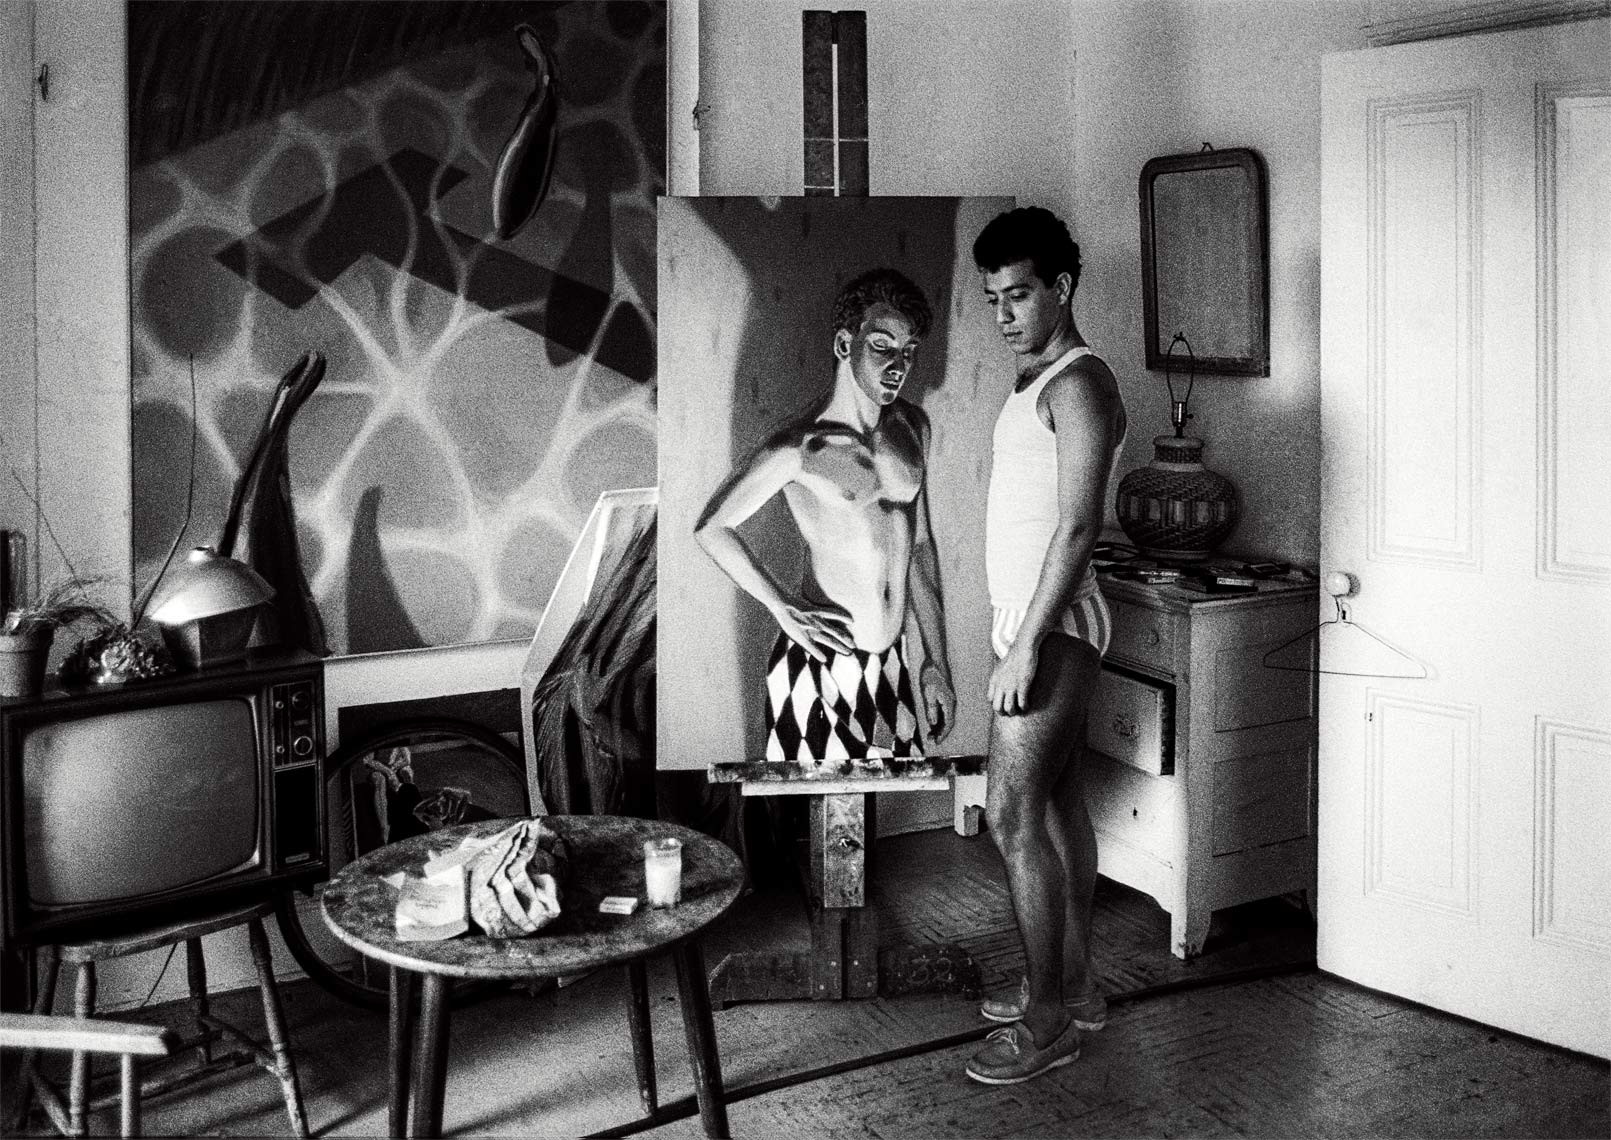 David Lebe; Antonio In His Studio, 1984, blacl and white photograph